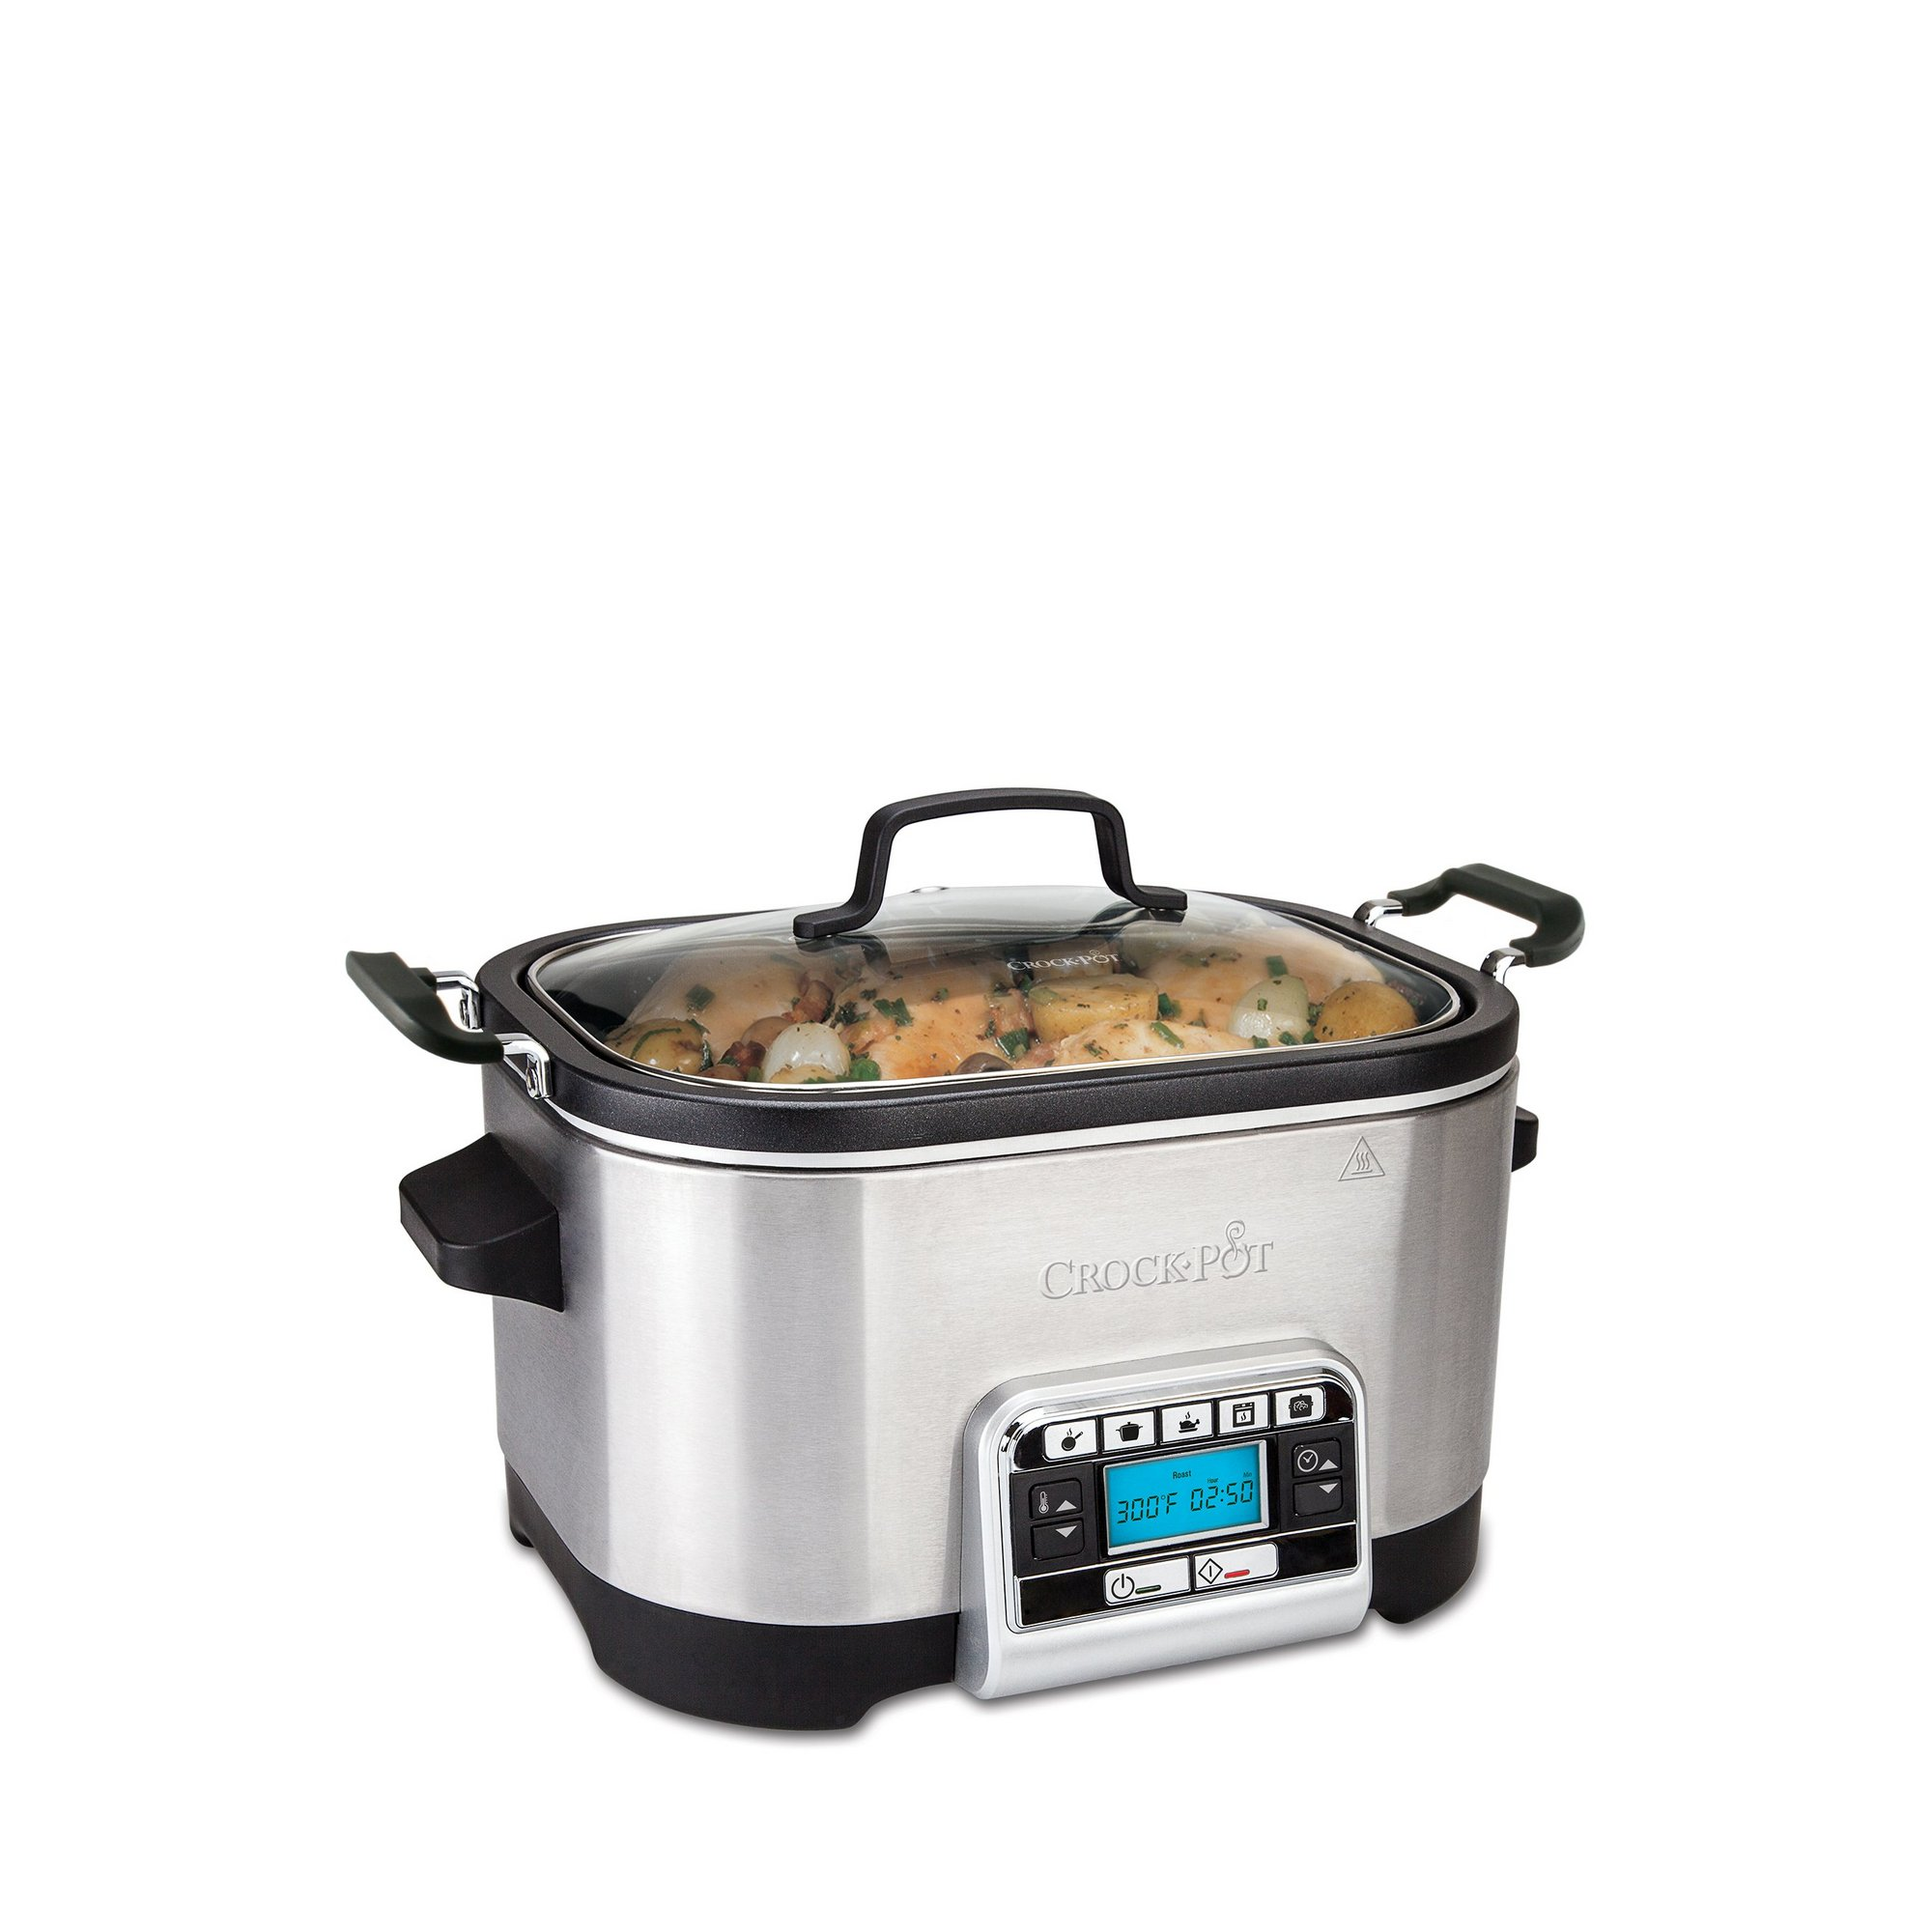 Image of Crockpot 5.6 Litre Digital Slow and Multi Cooker